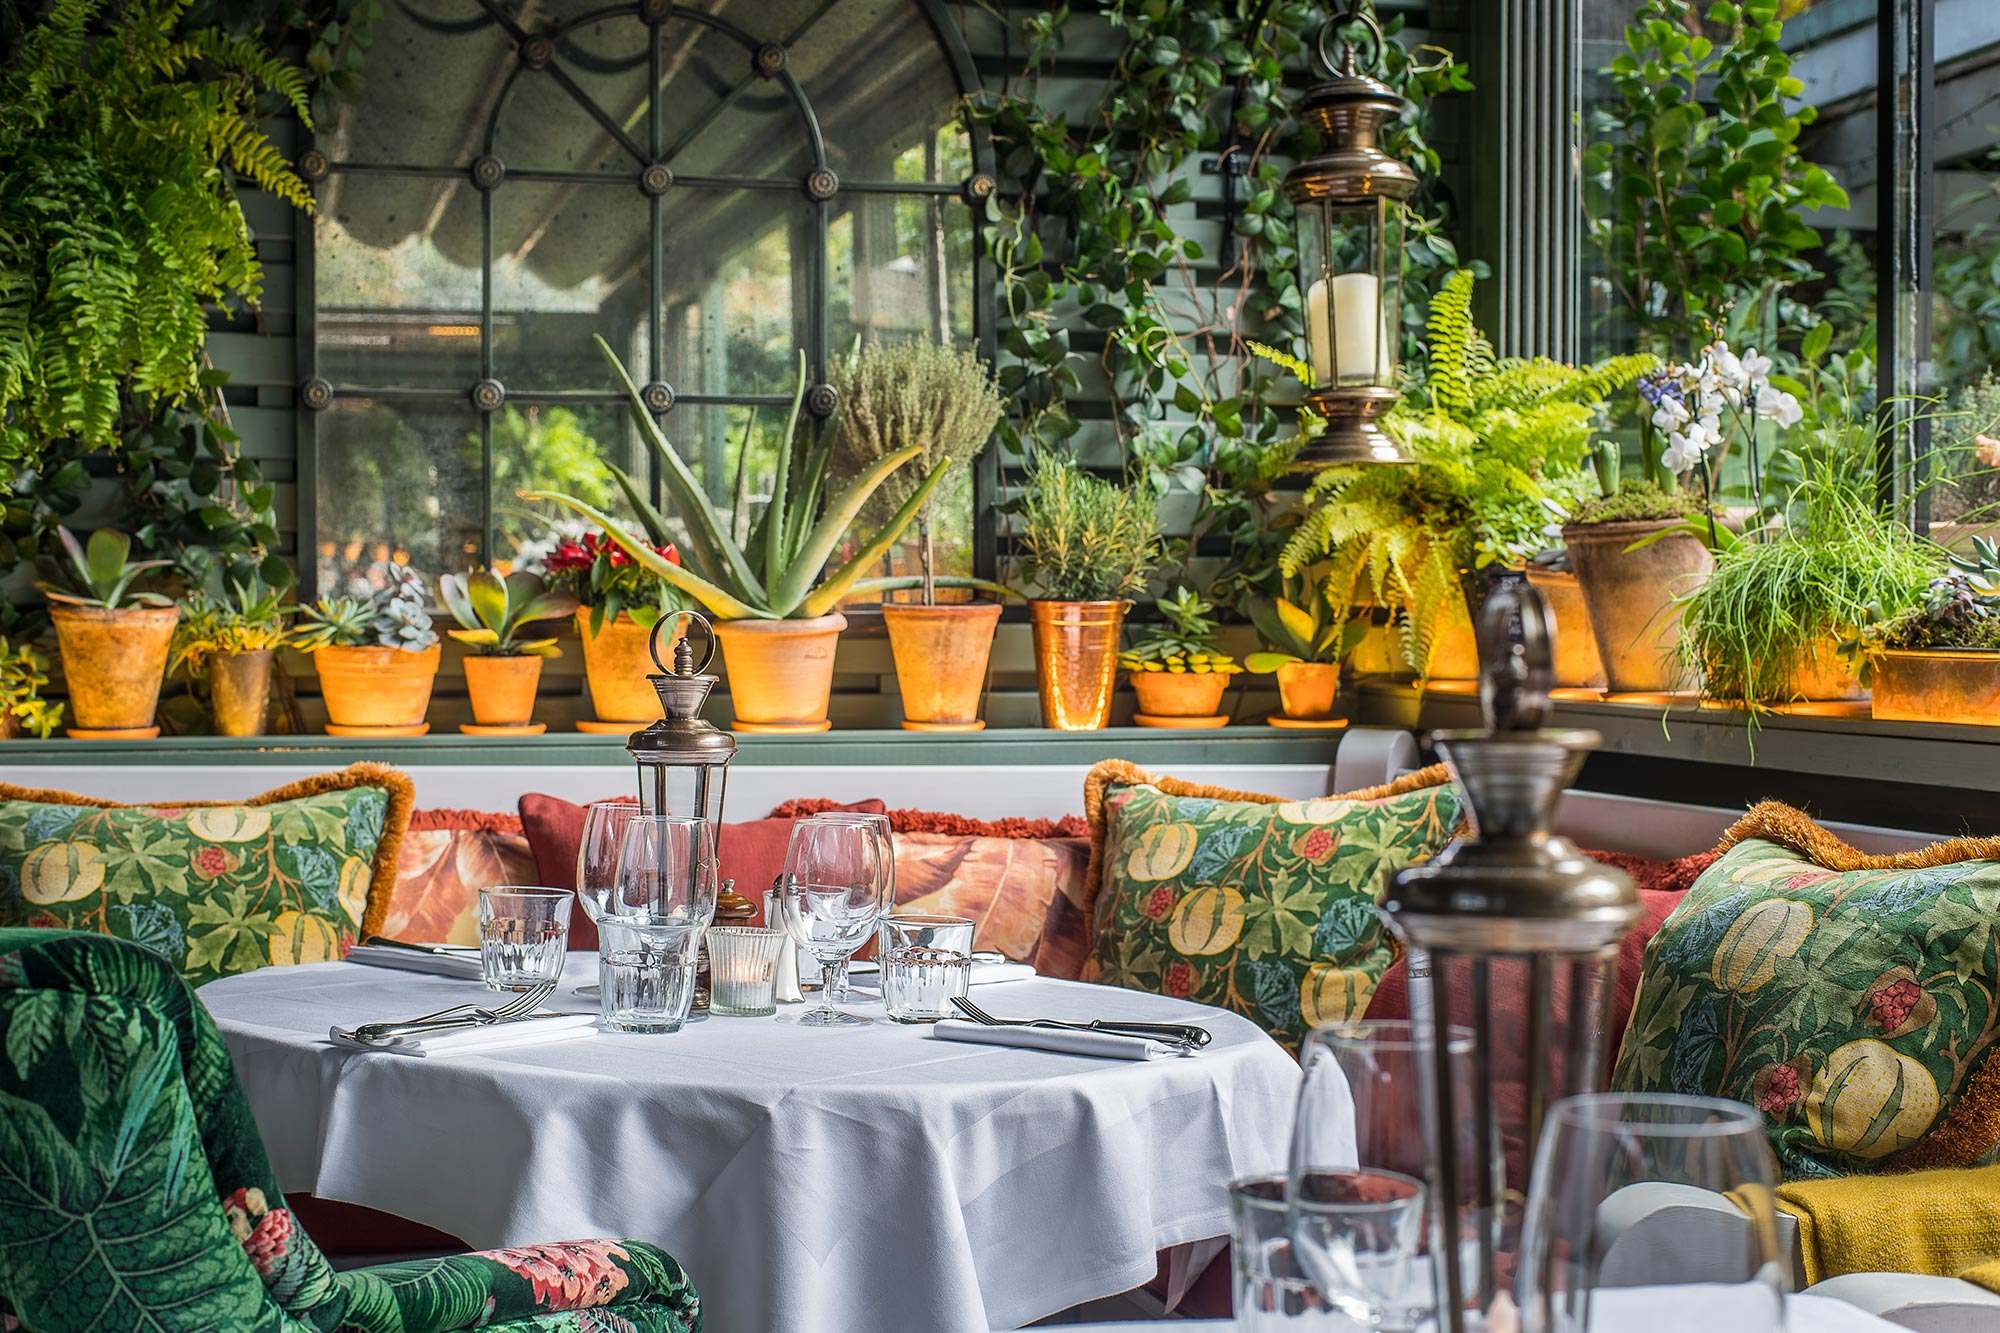 Eating out in Chelsea - The Winter Terrace at The Ivy Chelsea Garden - The Ivy Chelsea Garden